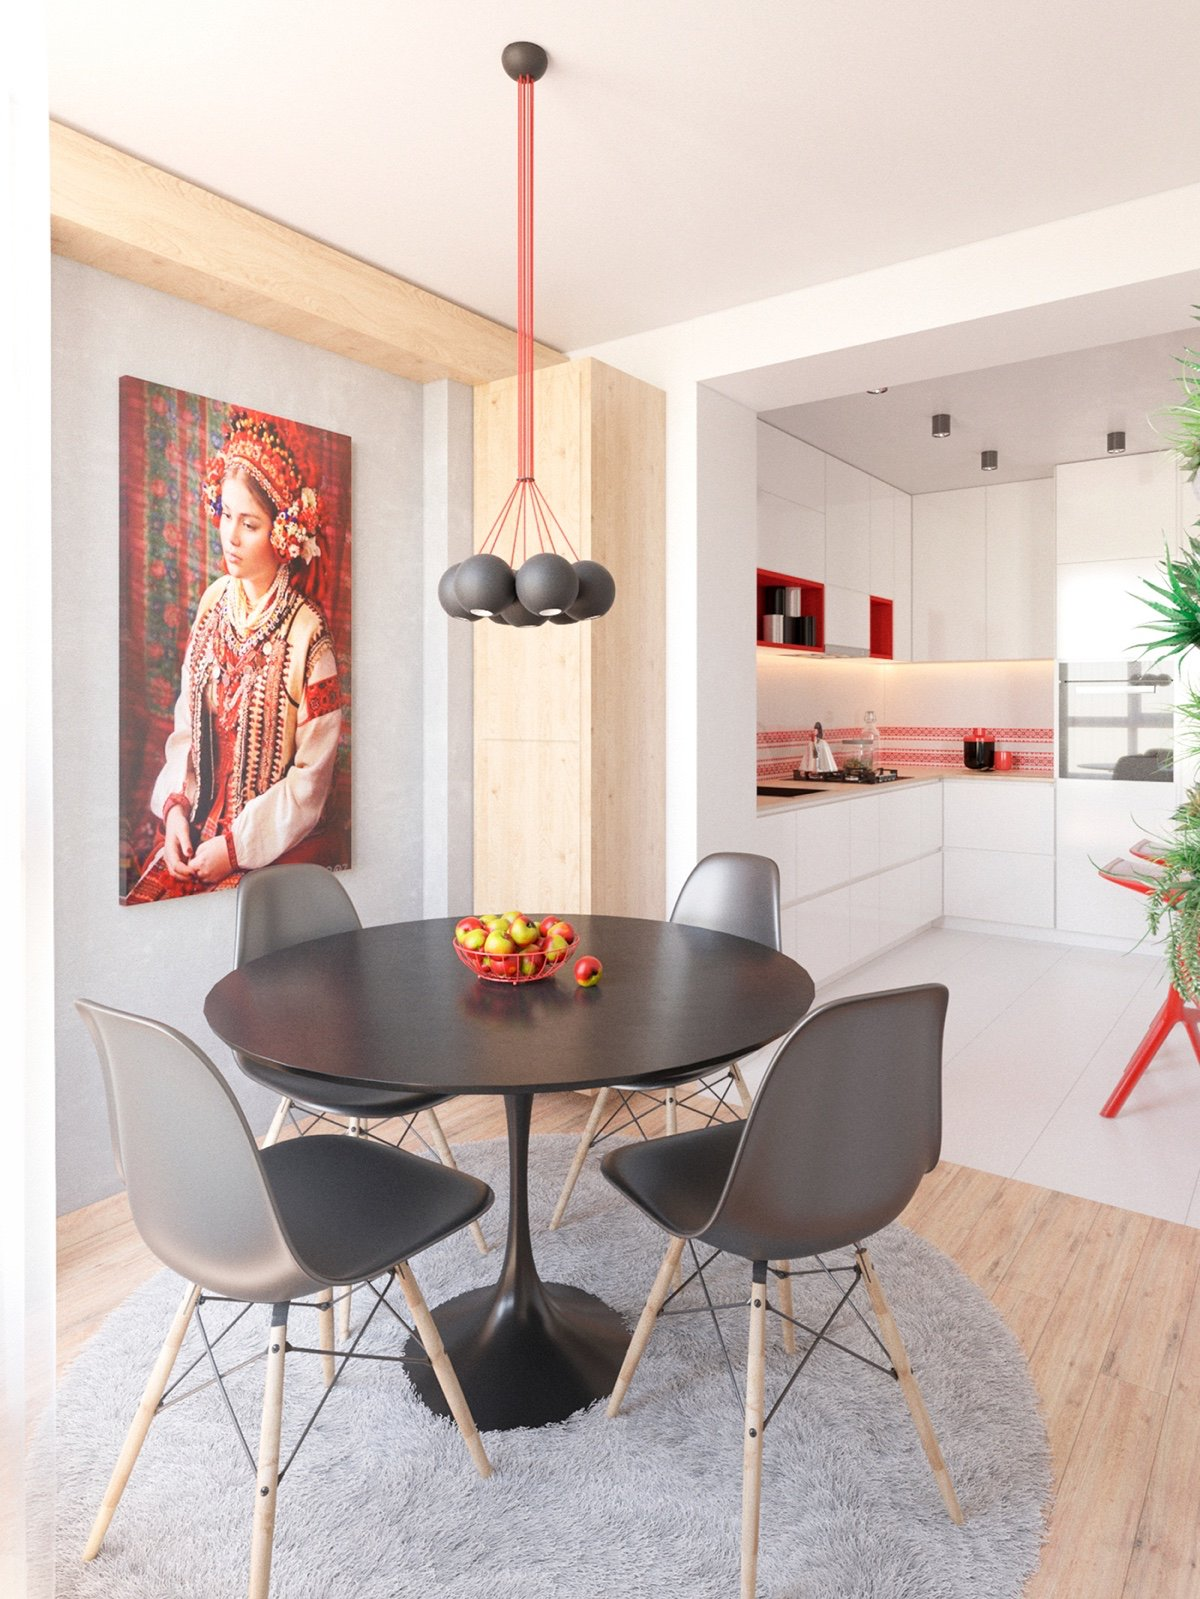 Eames Style Dining Chair Gray - 3 modern apartment interiors that masterfully demonstrate how to use red as an artistic accent